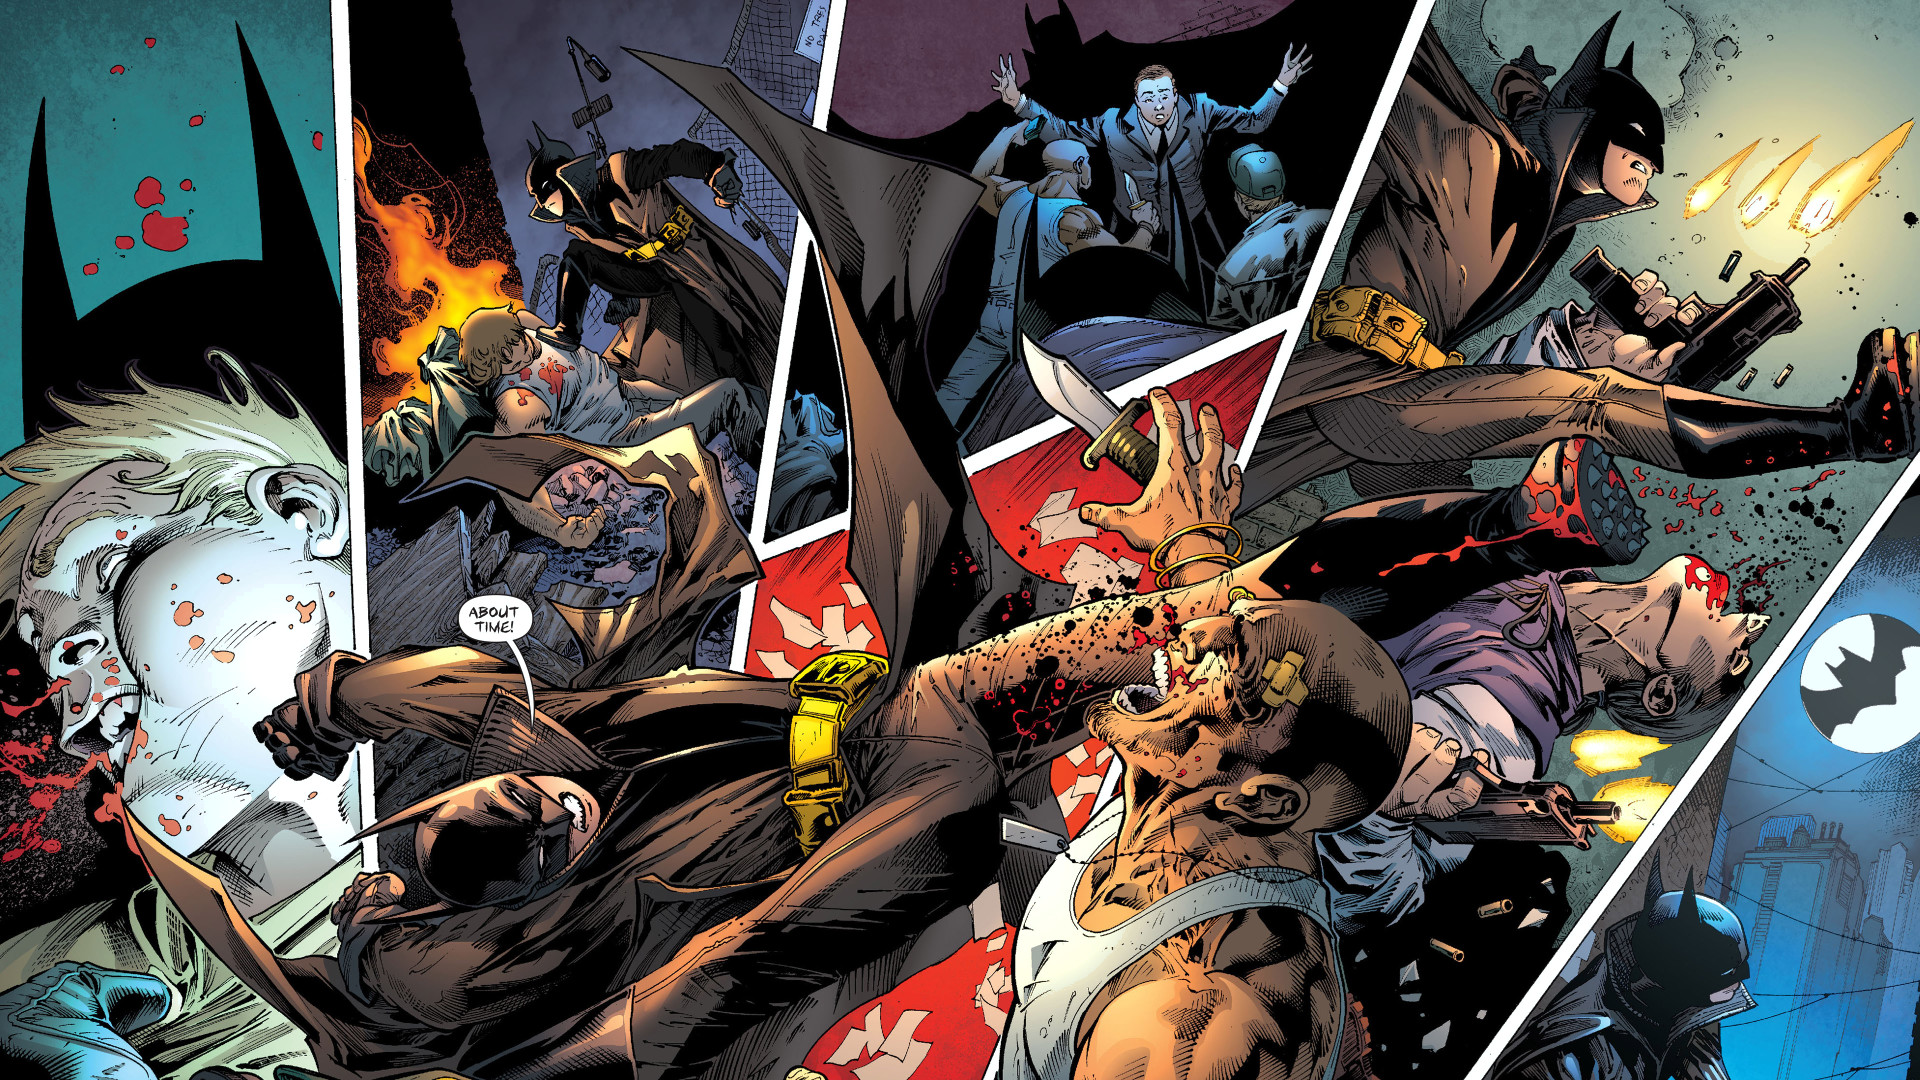 1920x1080 Wallpaper Abyss Everything Batman Comics Batman And Robin 391283